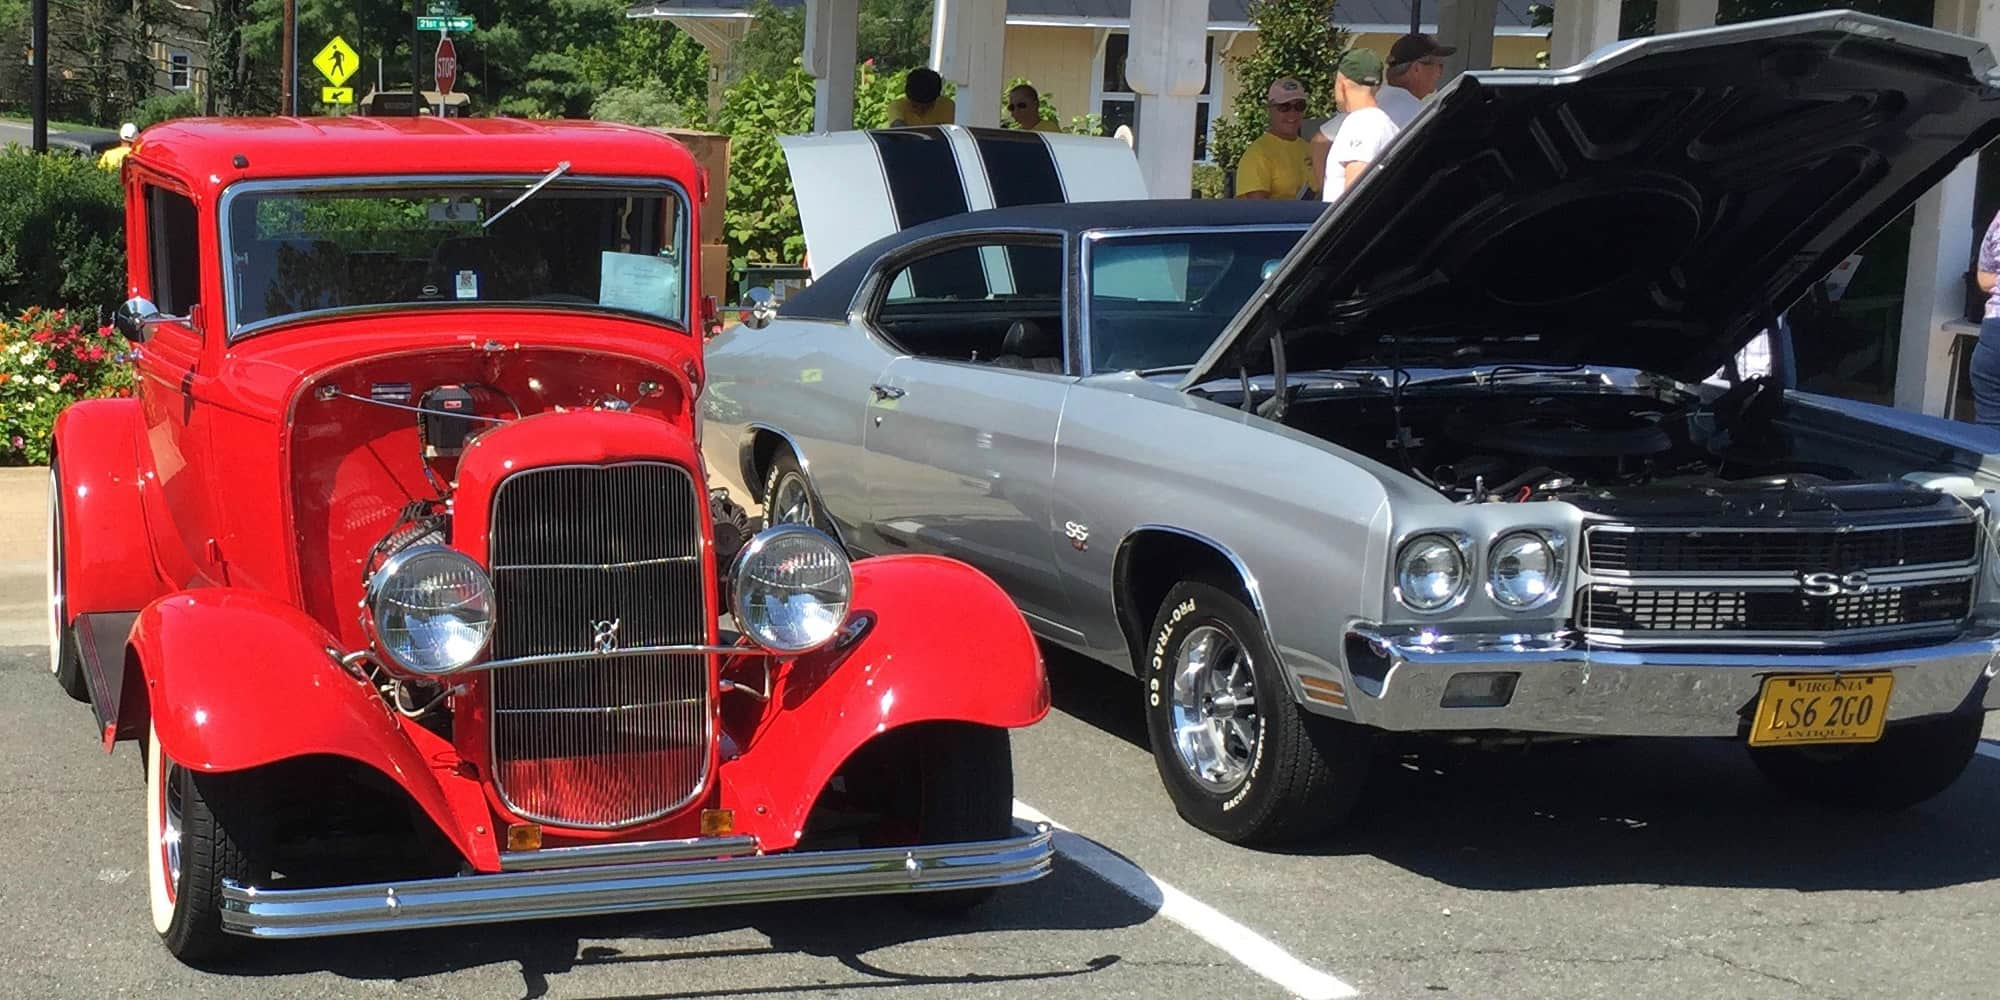 HeroHomes Second Annual Classic Car and Motorcycle Cruise In